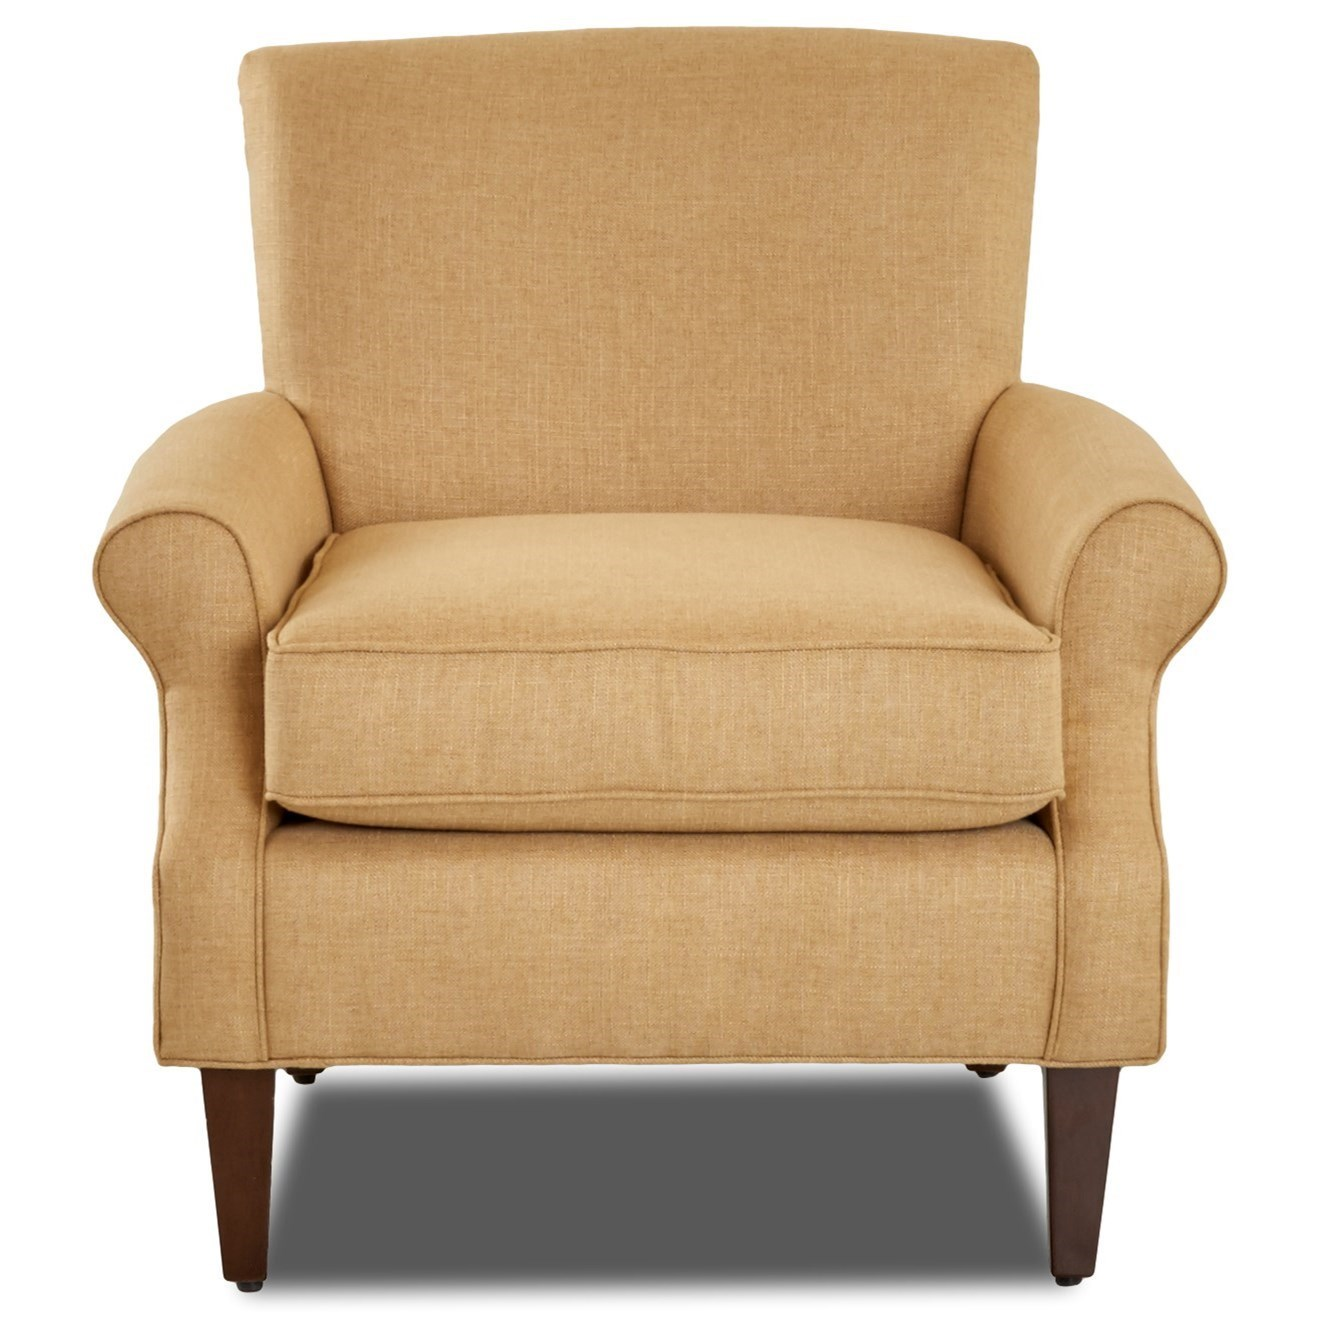 Value City Chairs Klaussner Chairs And Accents Casual Accent Chair Value City